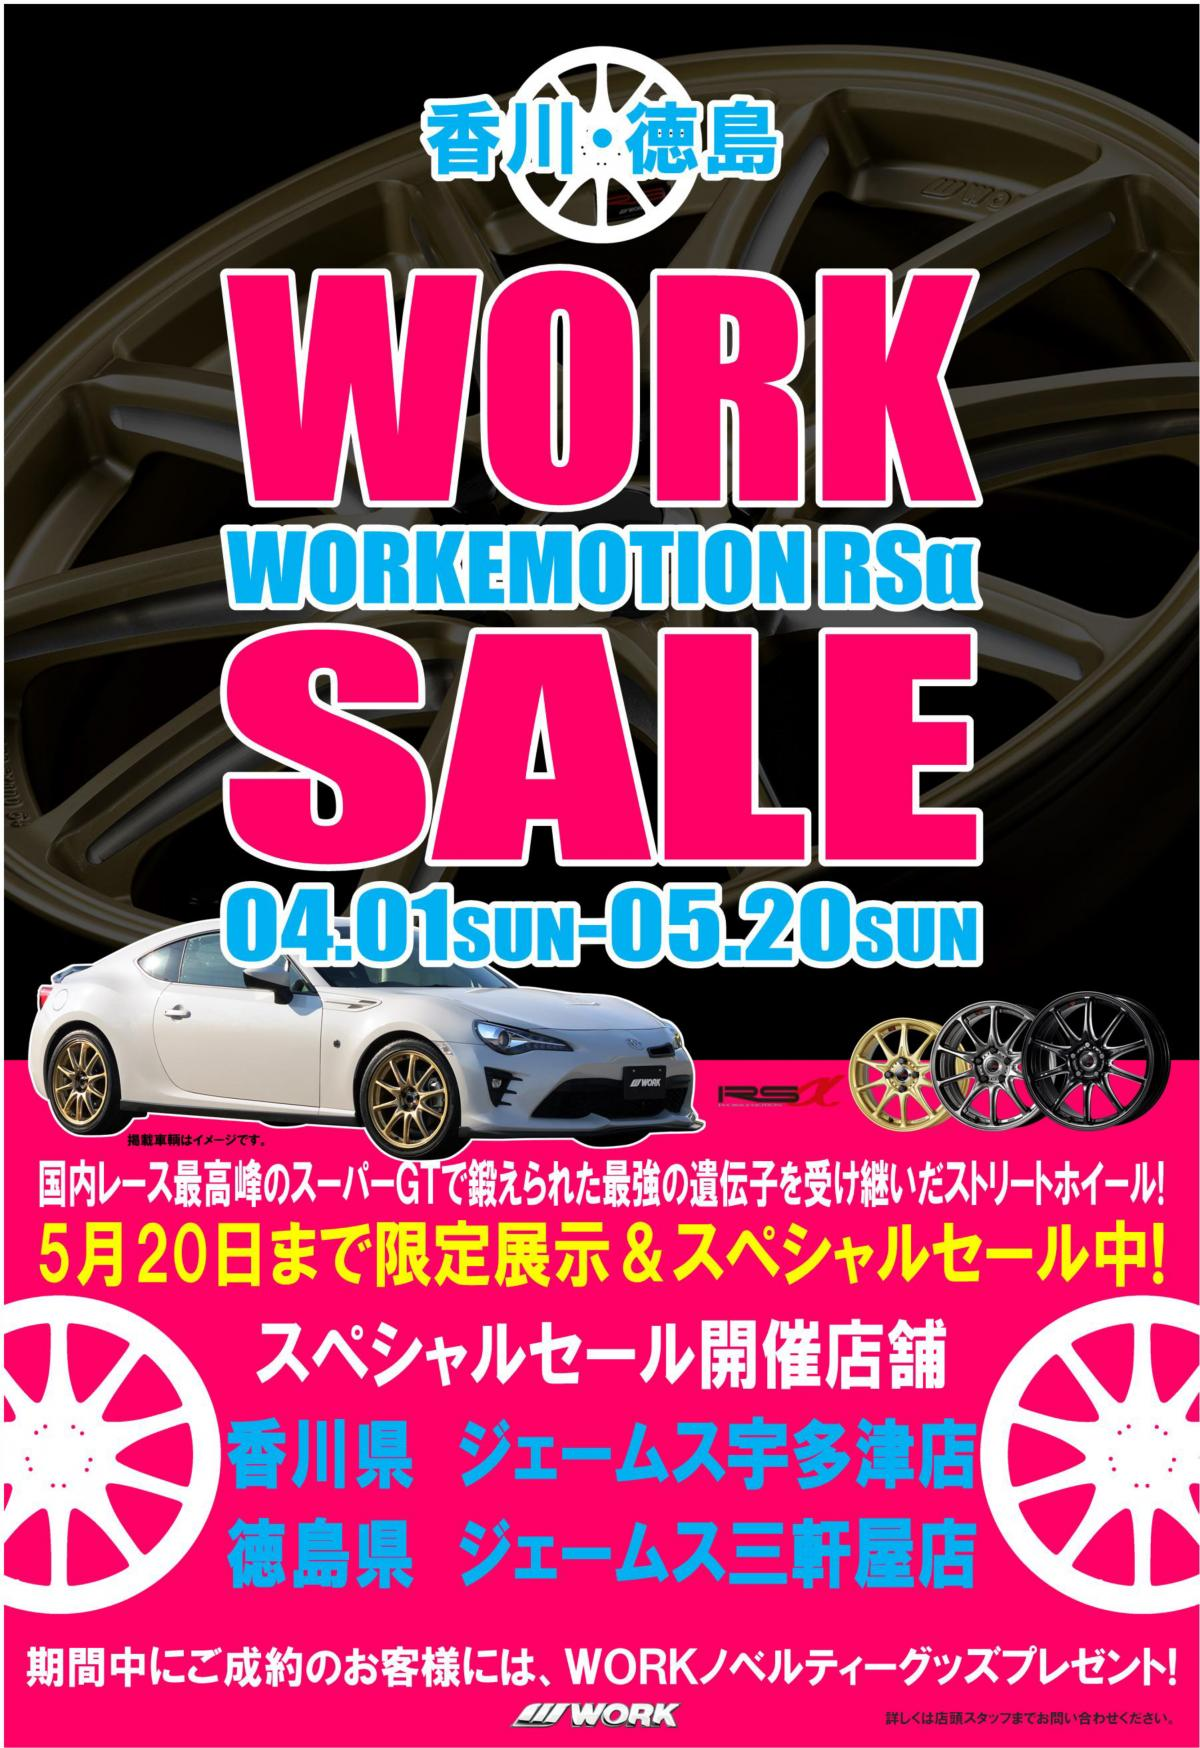 【Tokushima Prefecture】 WORK SPECIAL SALE